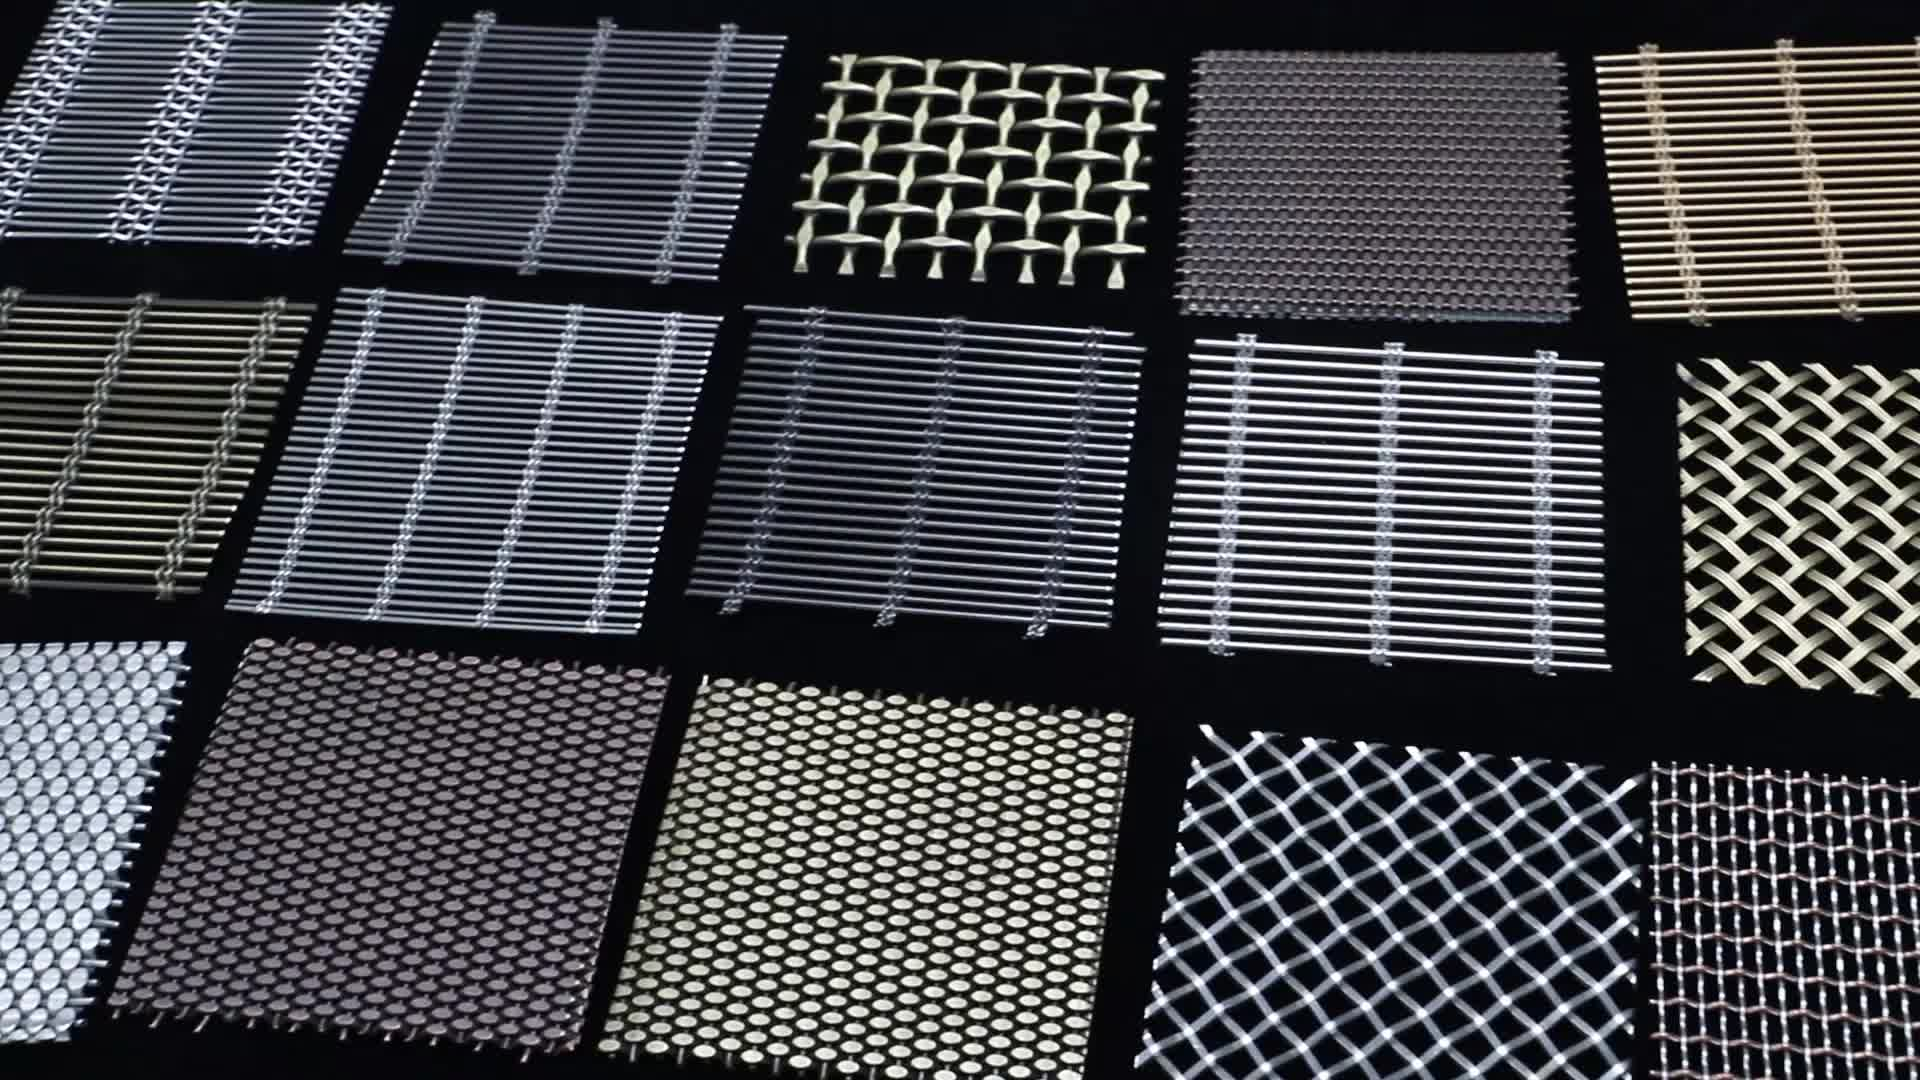 Building Facade Decorative stretched aluminum expanded metal mesh